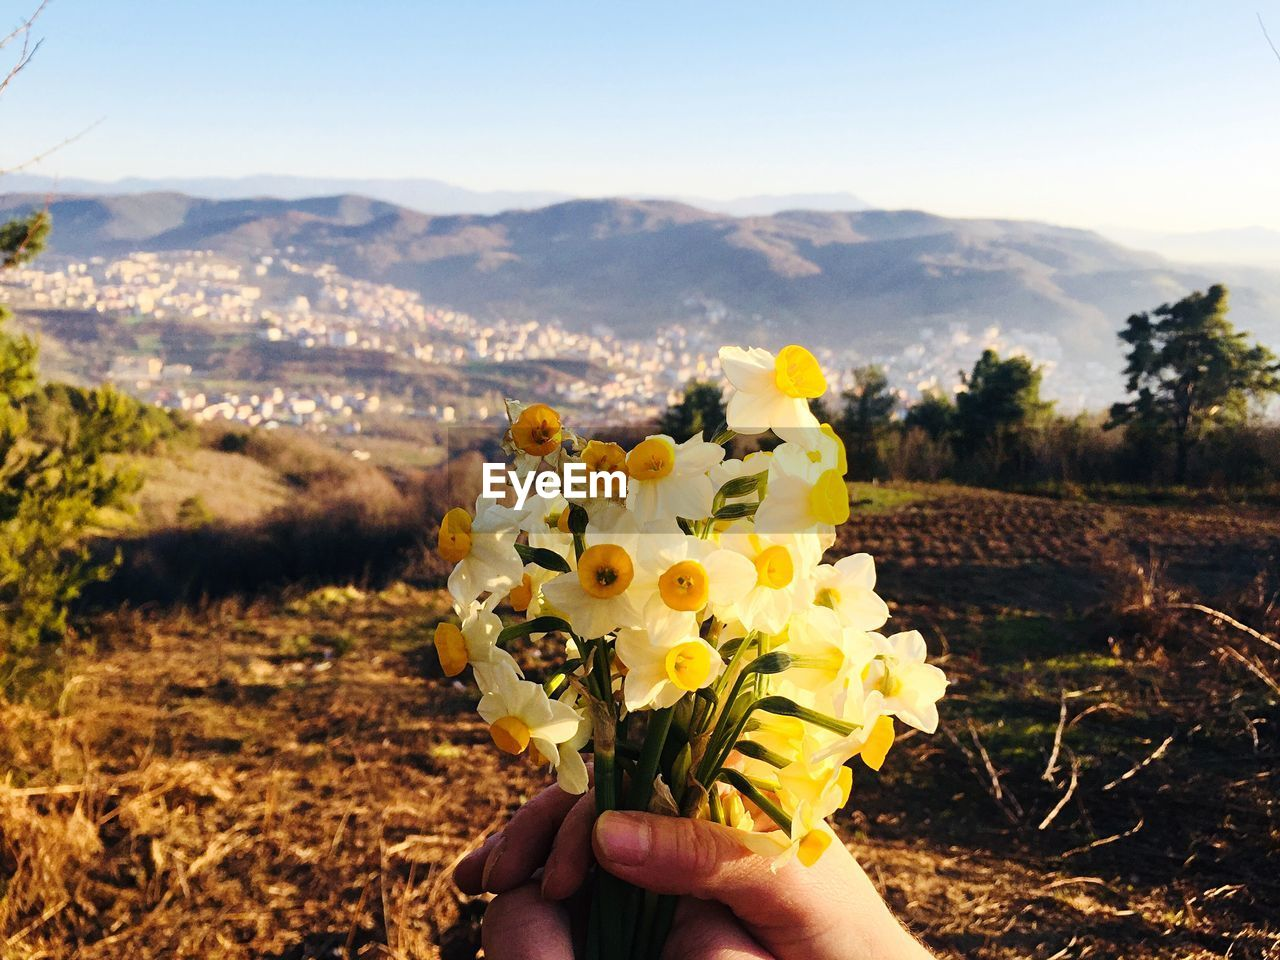 flower, nature, field, landscape, human hand, beauty in nature, outdoors, one person, focus on foreground, mountain, holding, day, plant, agriculture, yellow, real people, rural scene, growth, human body part, sunlight, sky, sunflower, fragility, scenics, close-up, freshness, flower head, clear sky, people